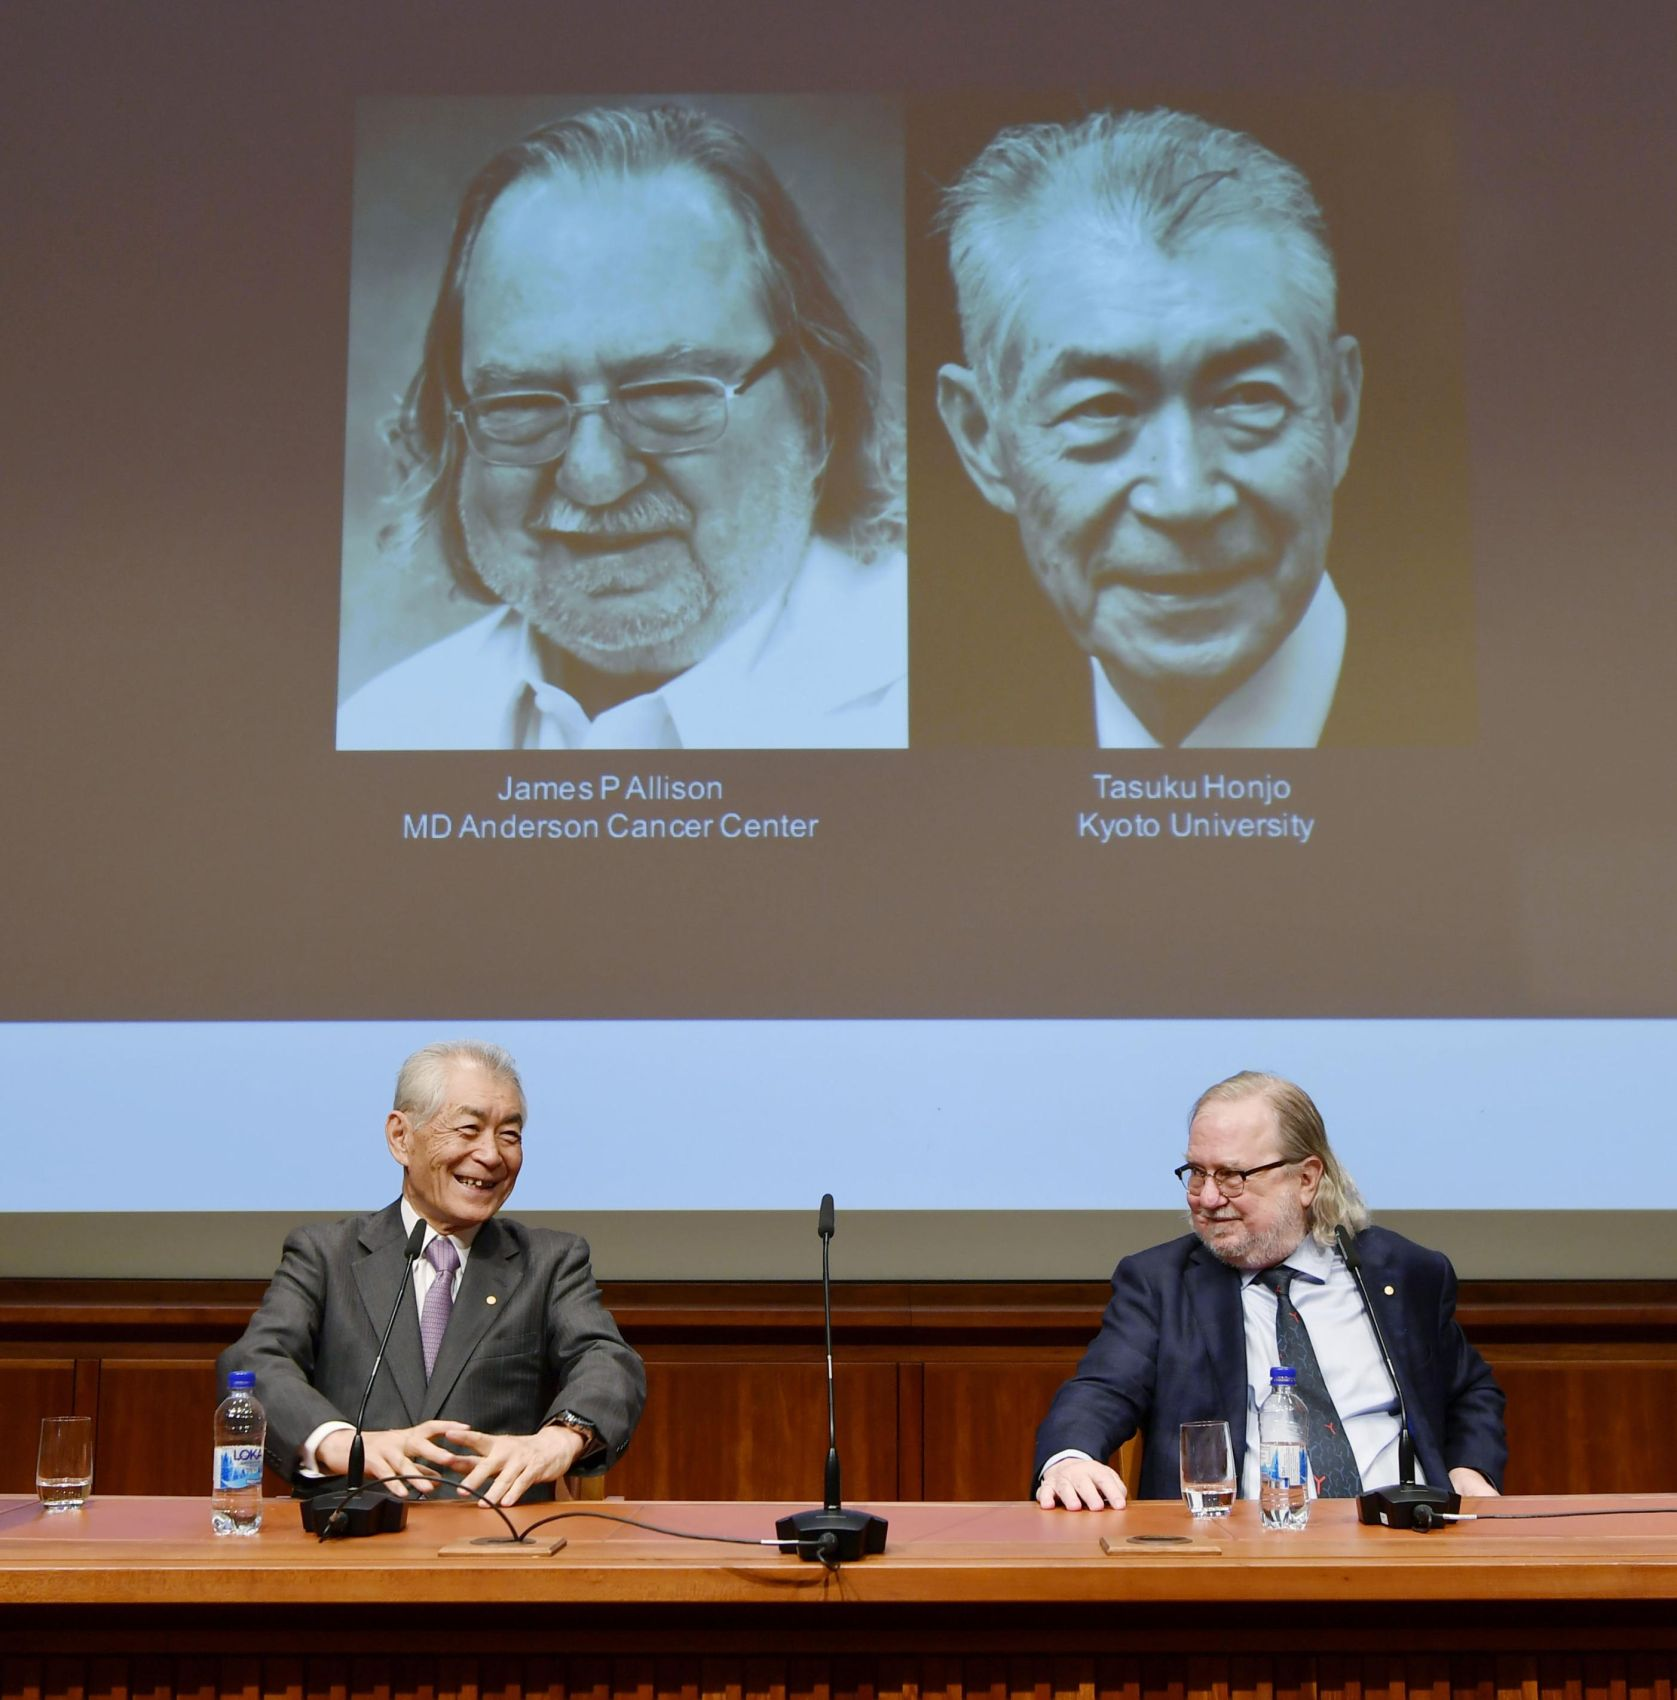 'Cancer Can Be Conquered,' Says 2018 Nobel Prize Laureate Tasuku Honjo